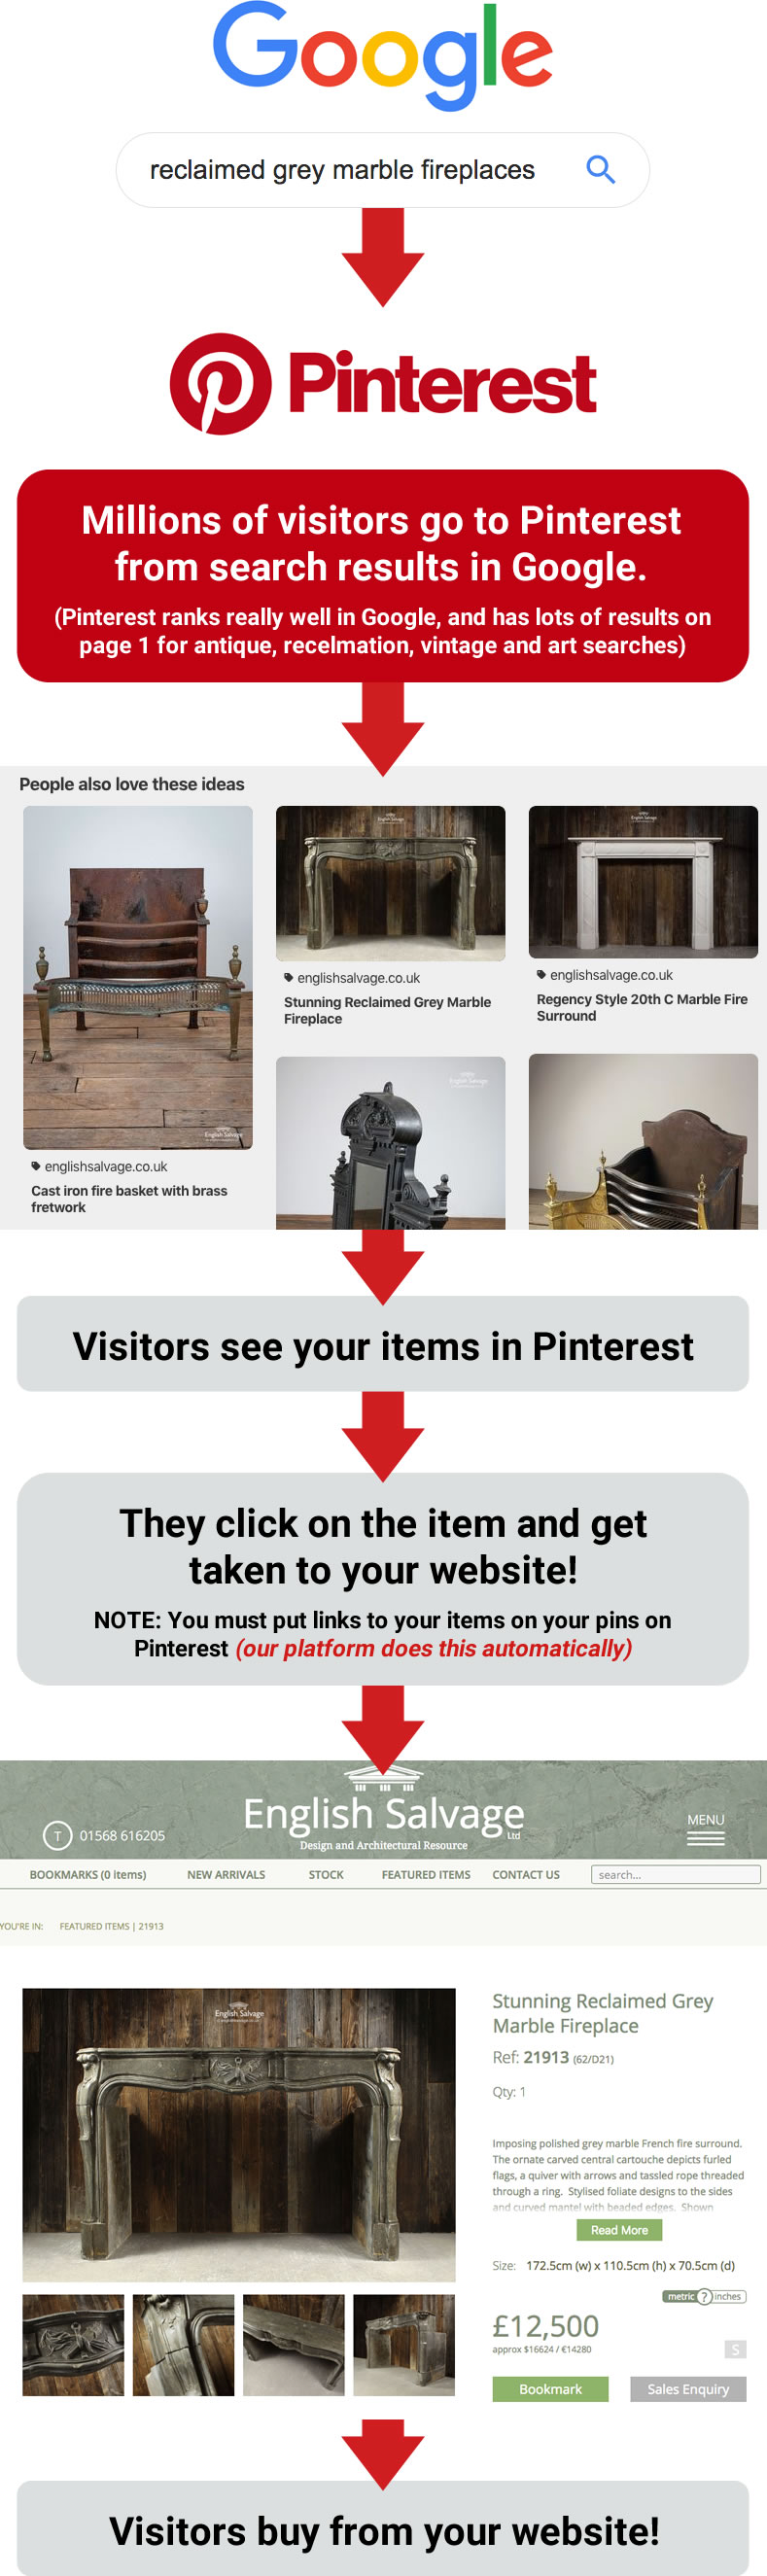 Getting visitors via Pinterest from Google